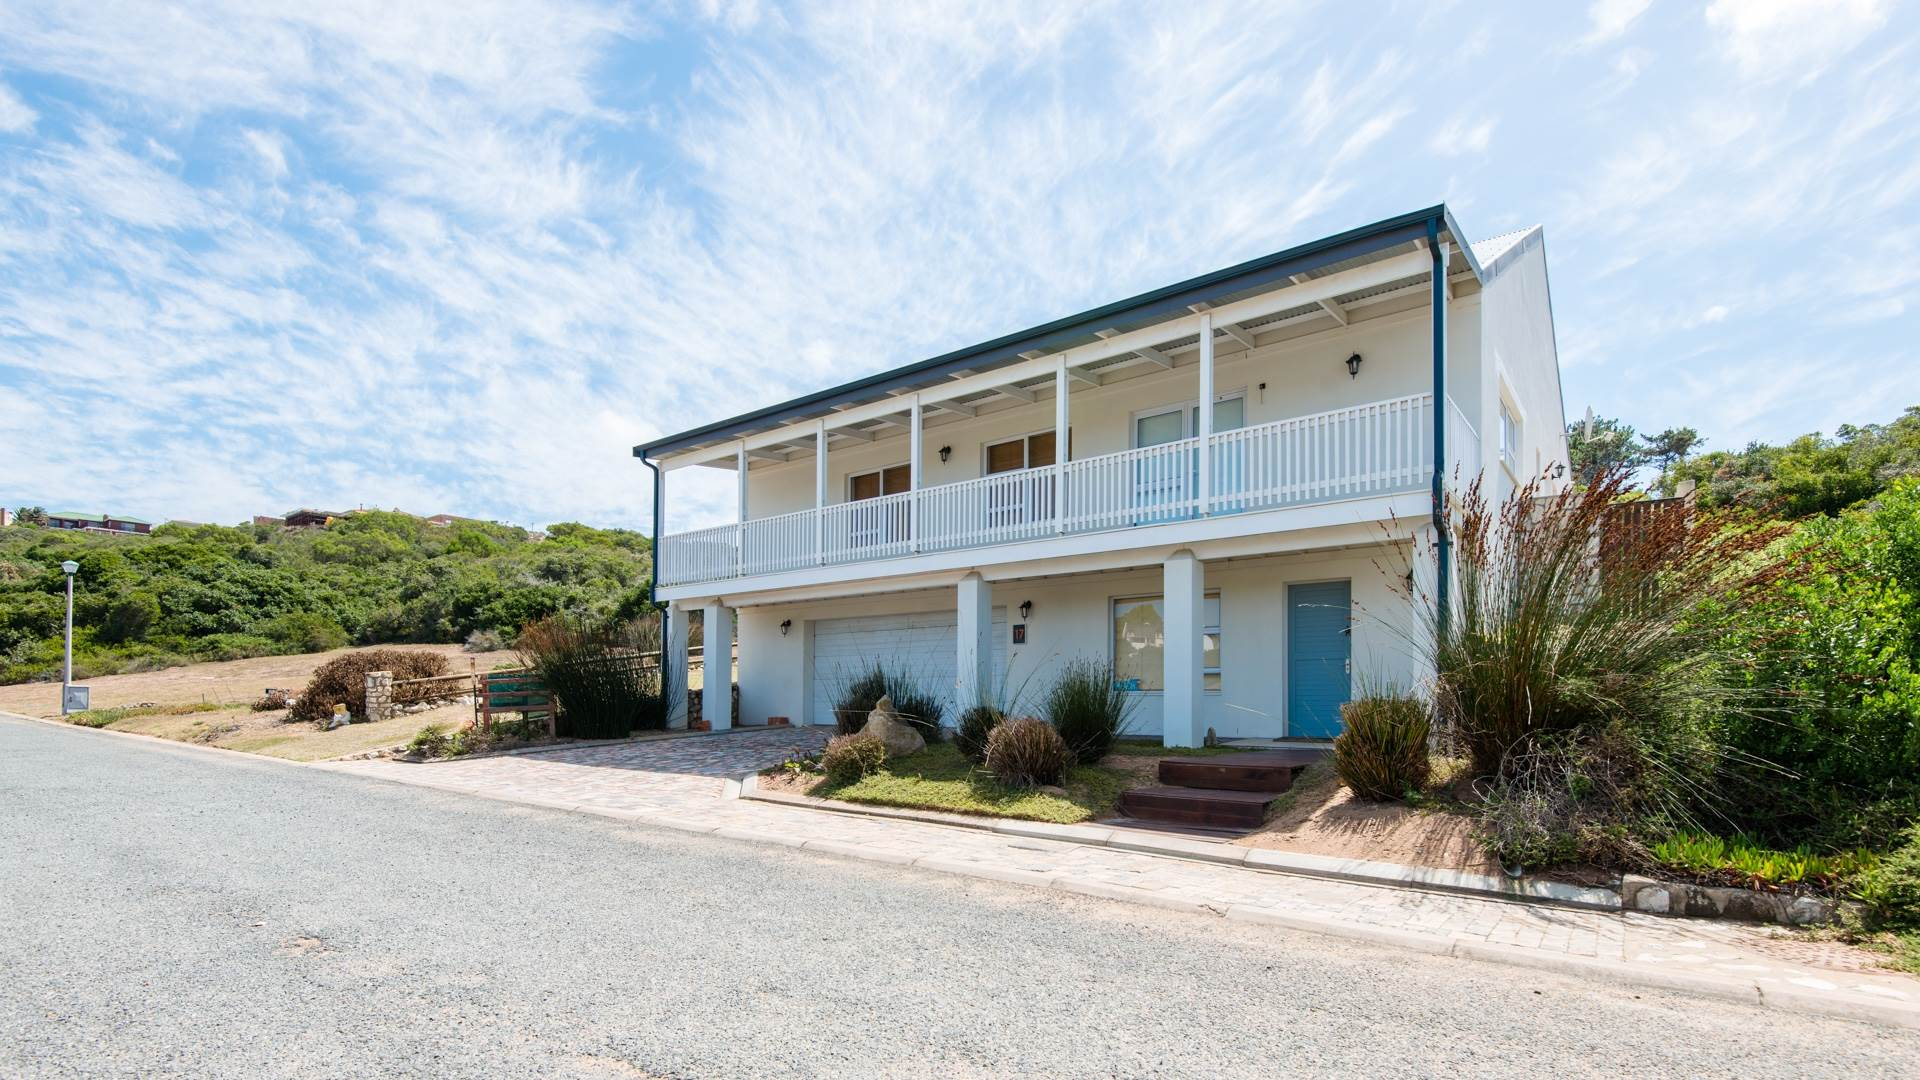 4 BedroomHouse For Sale In Still Bay West